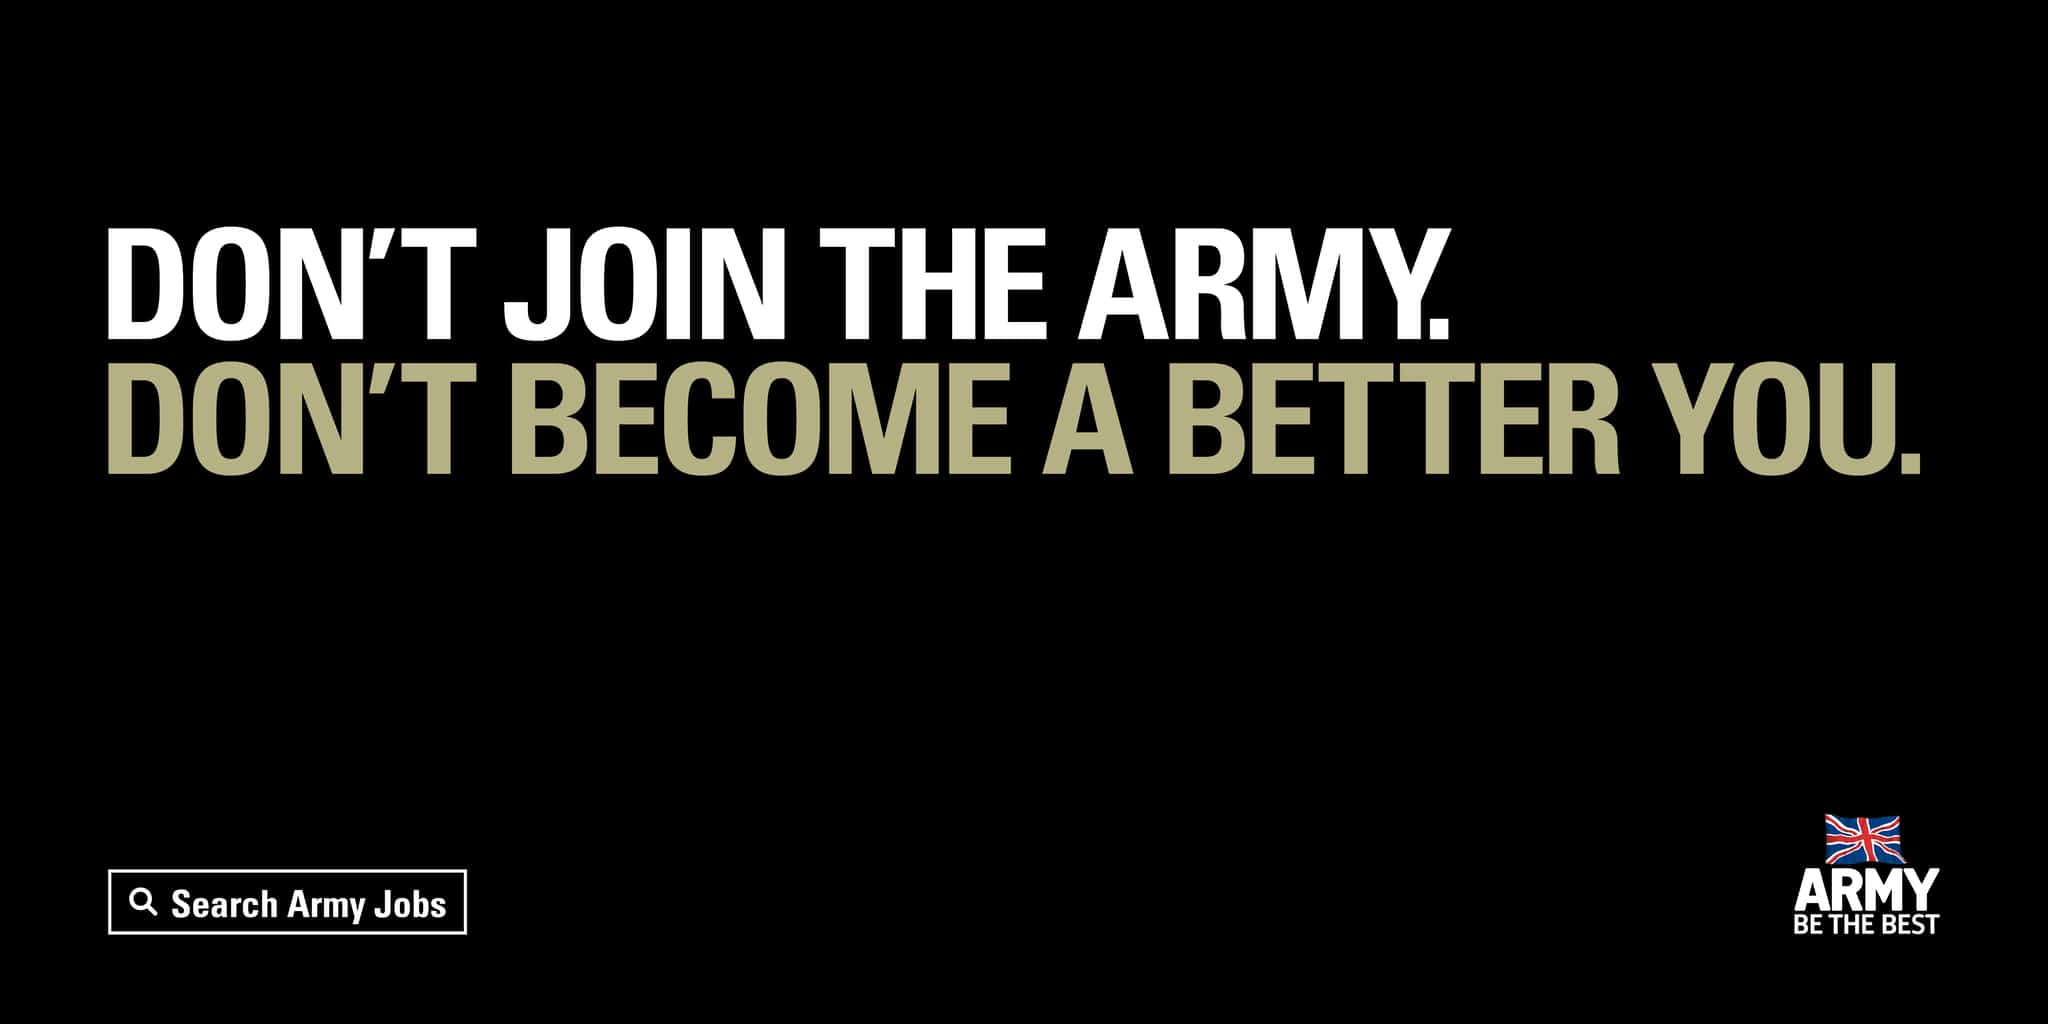 Army_Karmarama_48sheet_BetterYou